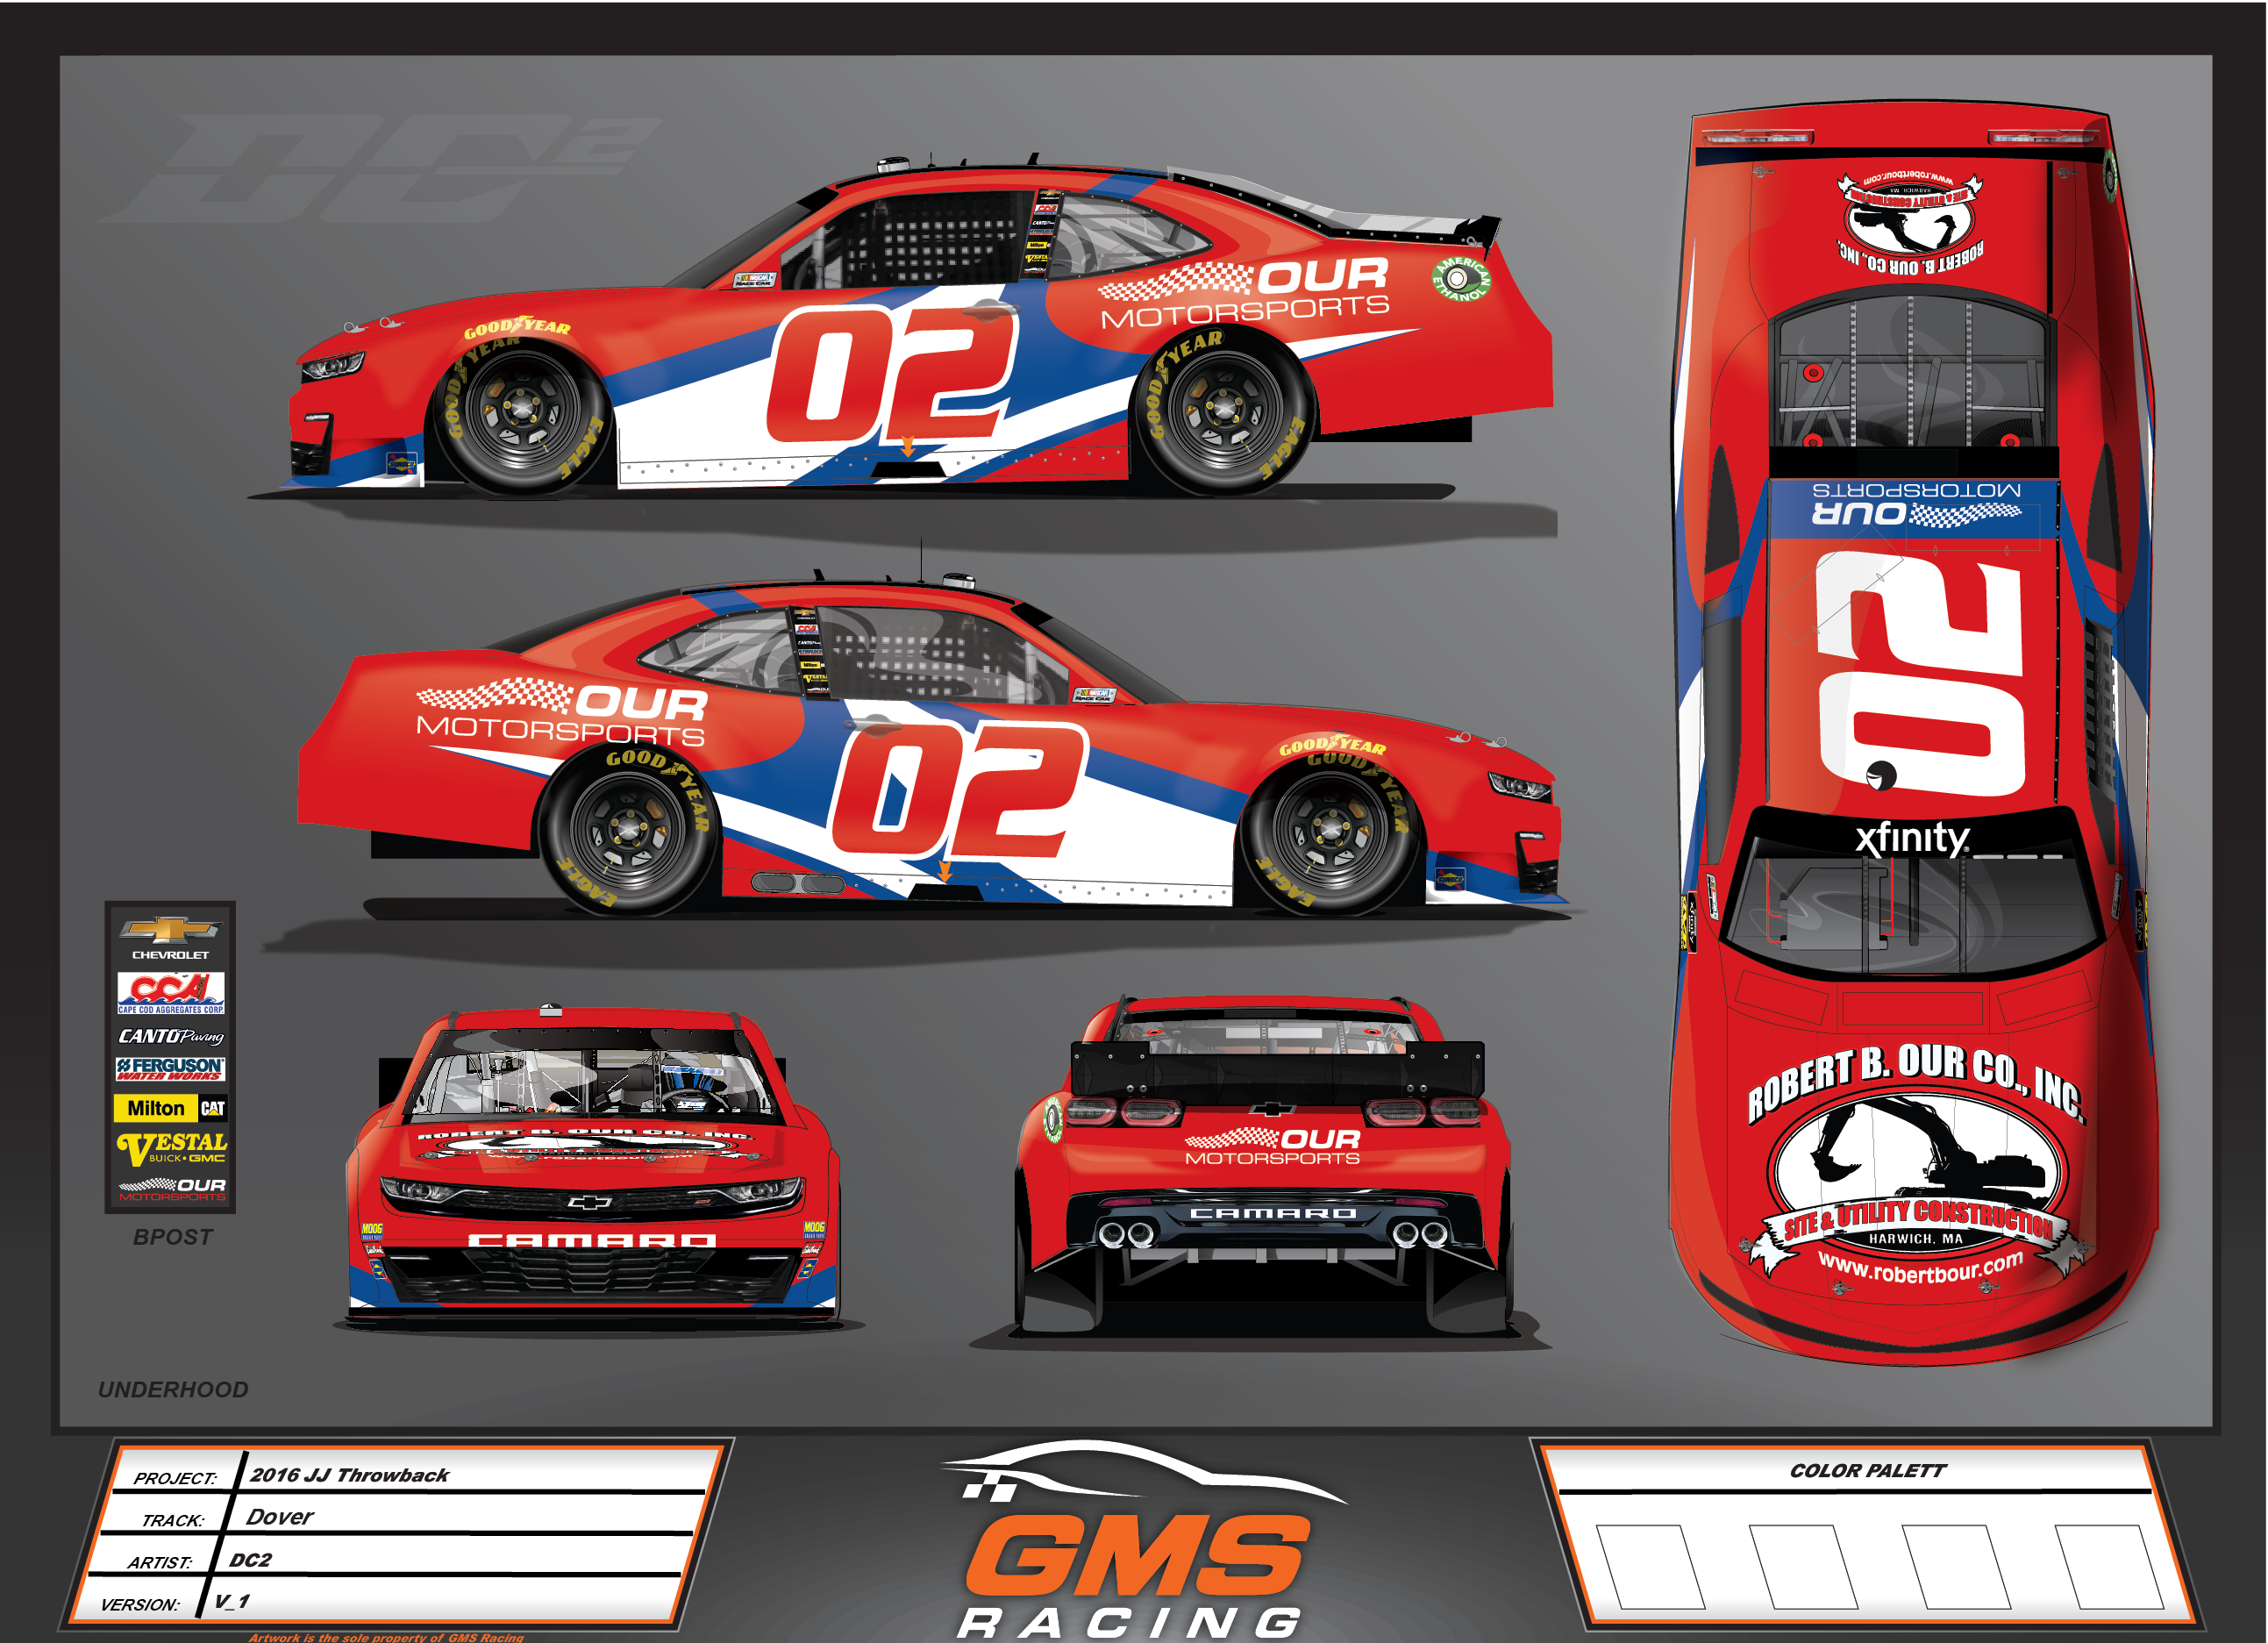 02 Our Motorsports Dover